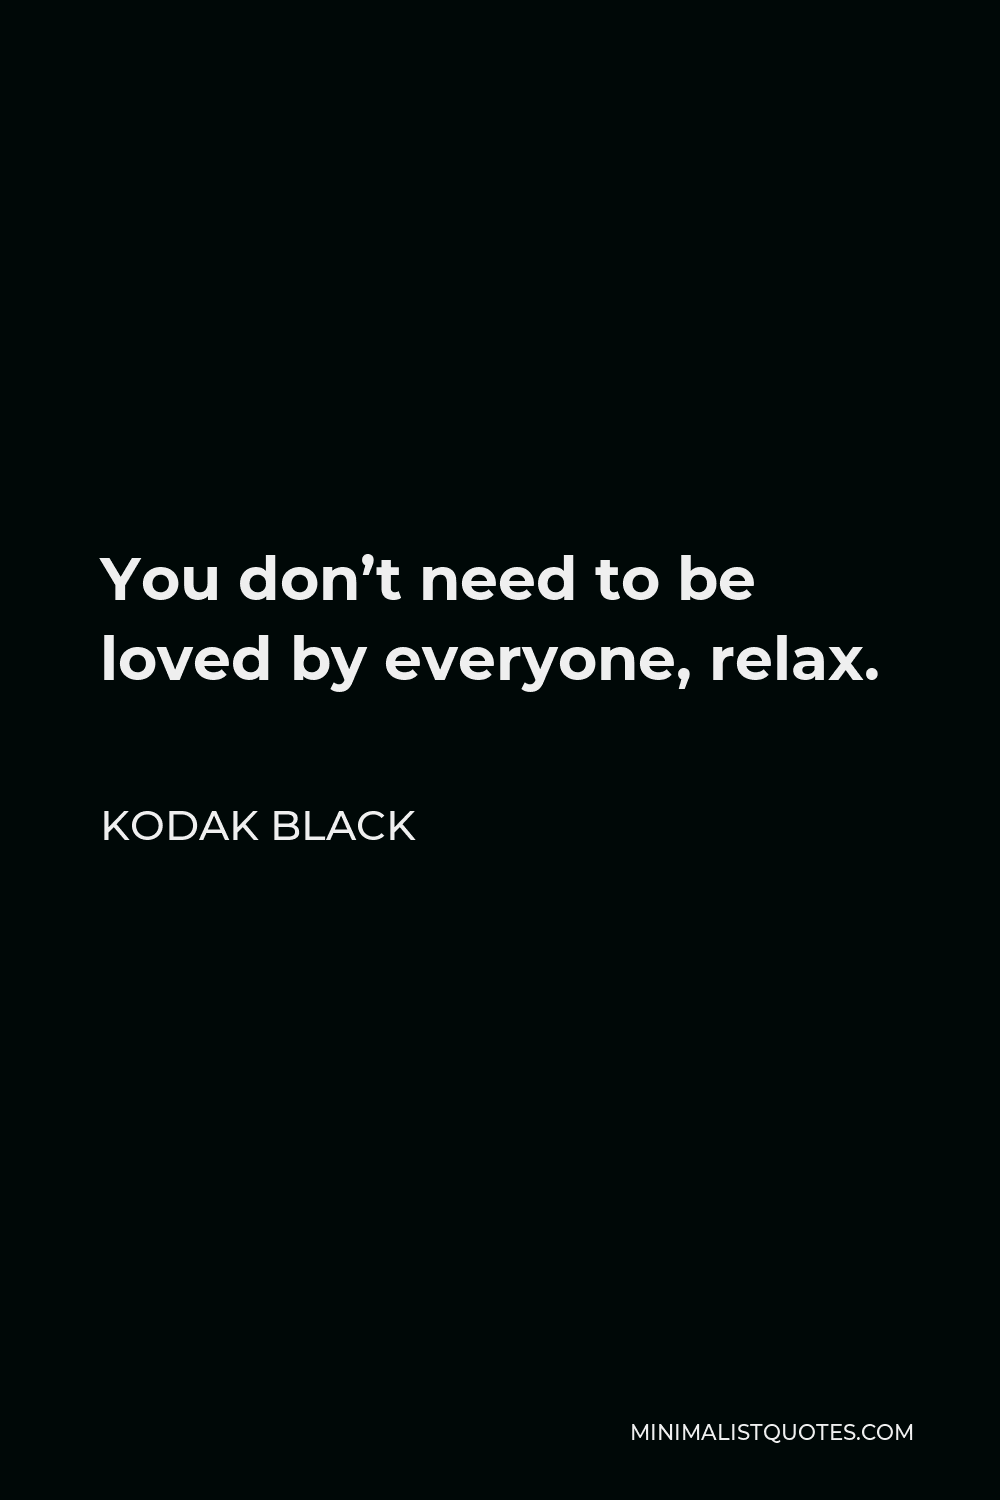 Kodak Black Quote - You don'tneed to be loved by everyone, relax.